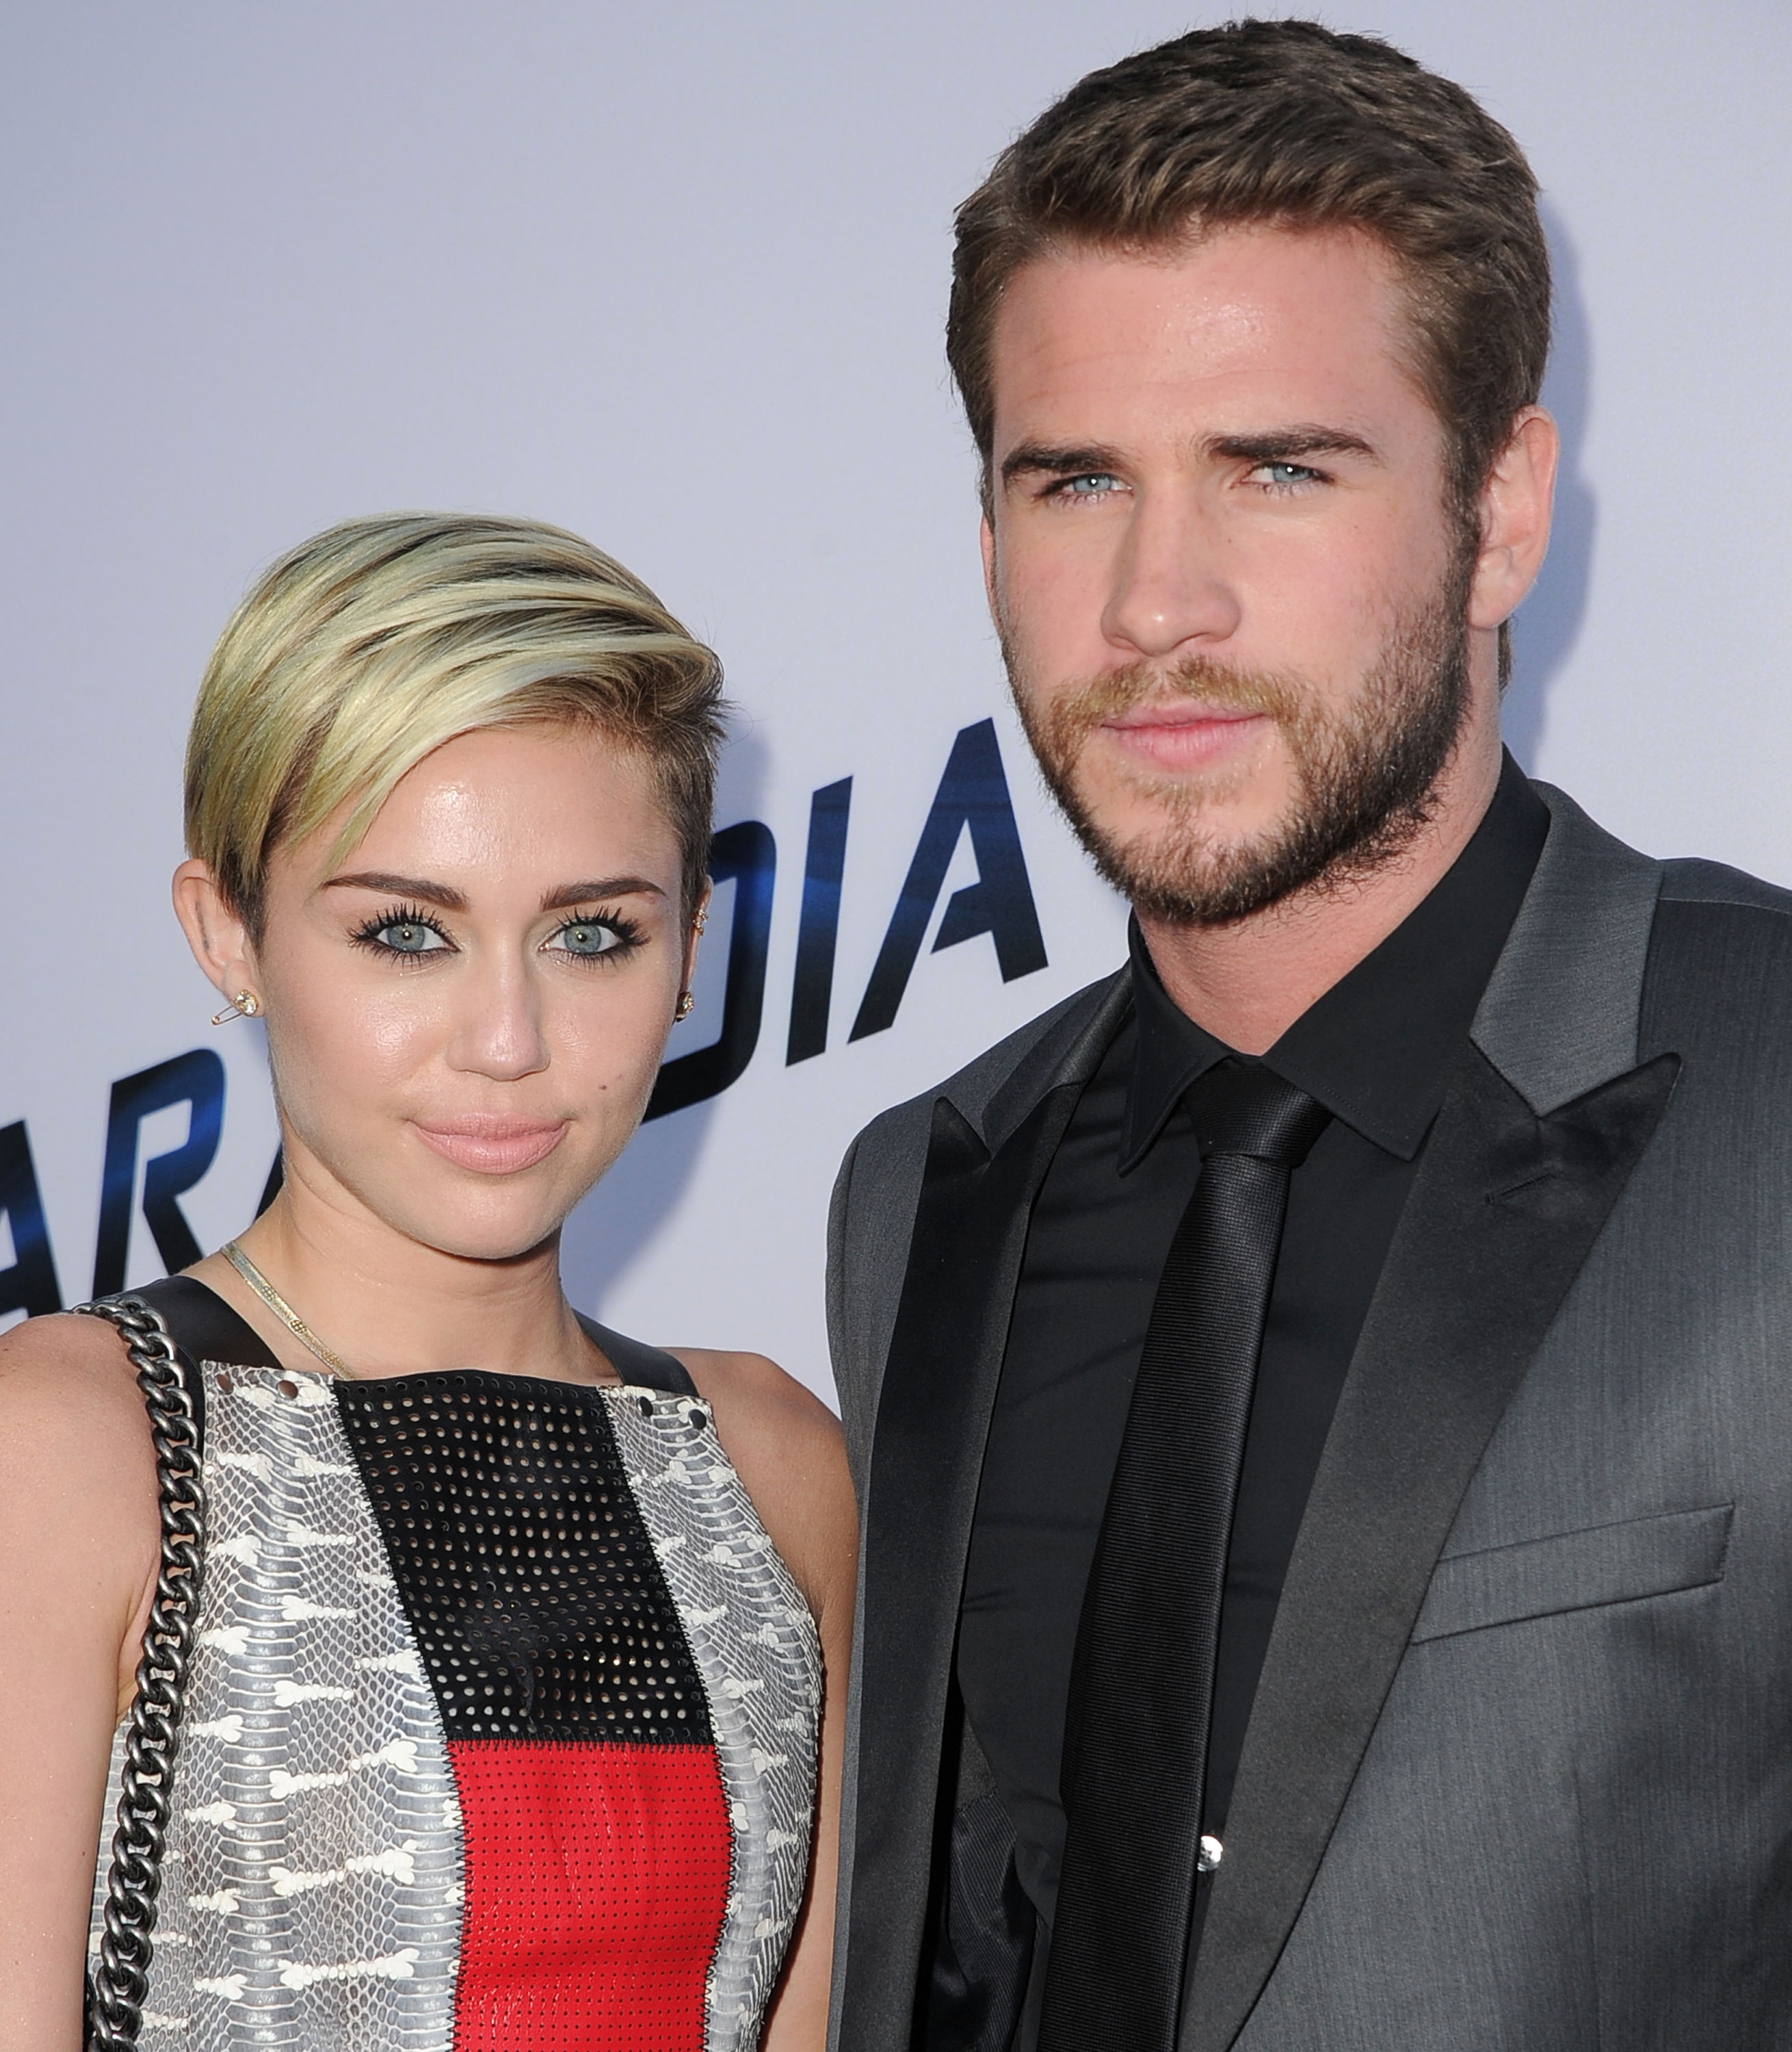 Too cute: Miley Cyrus and Liam Hemsworth sing and bicker in the car in new Instagram